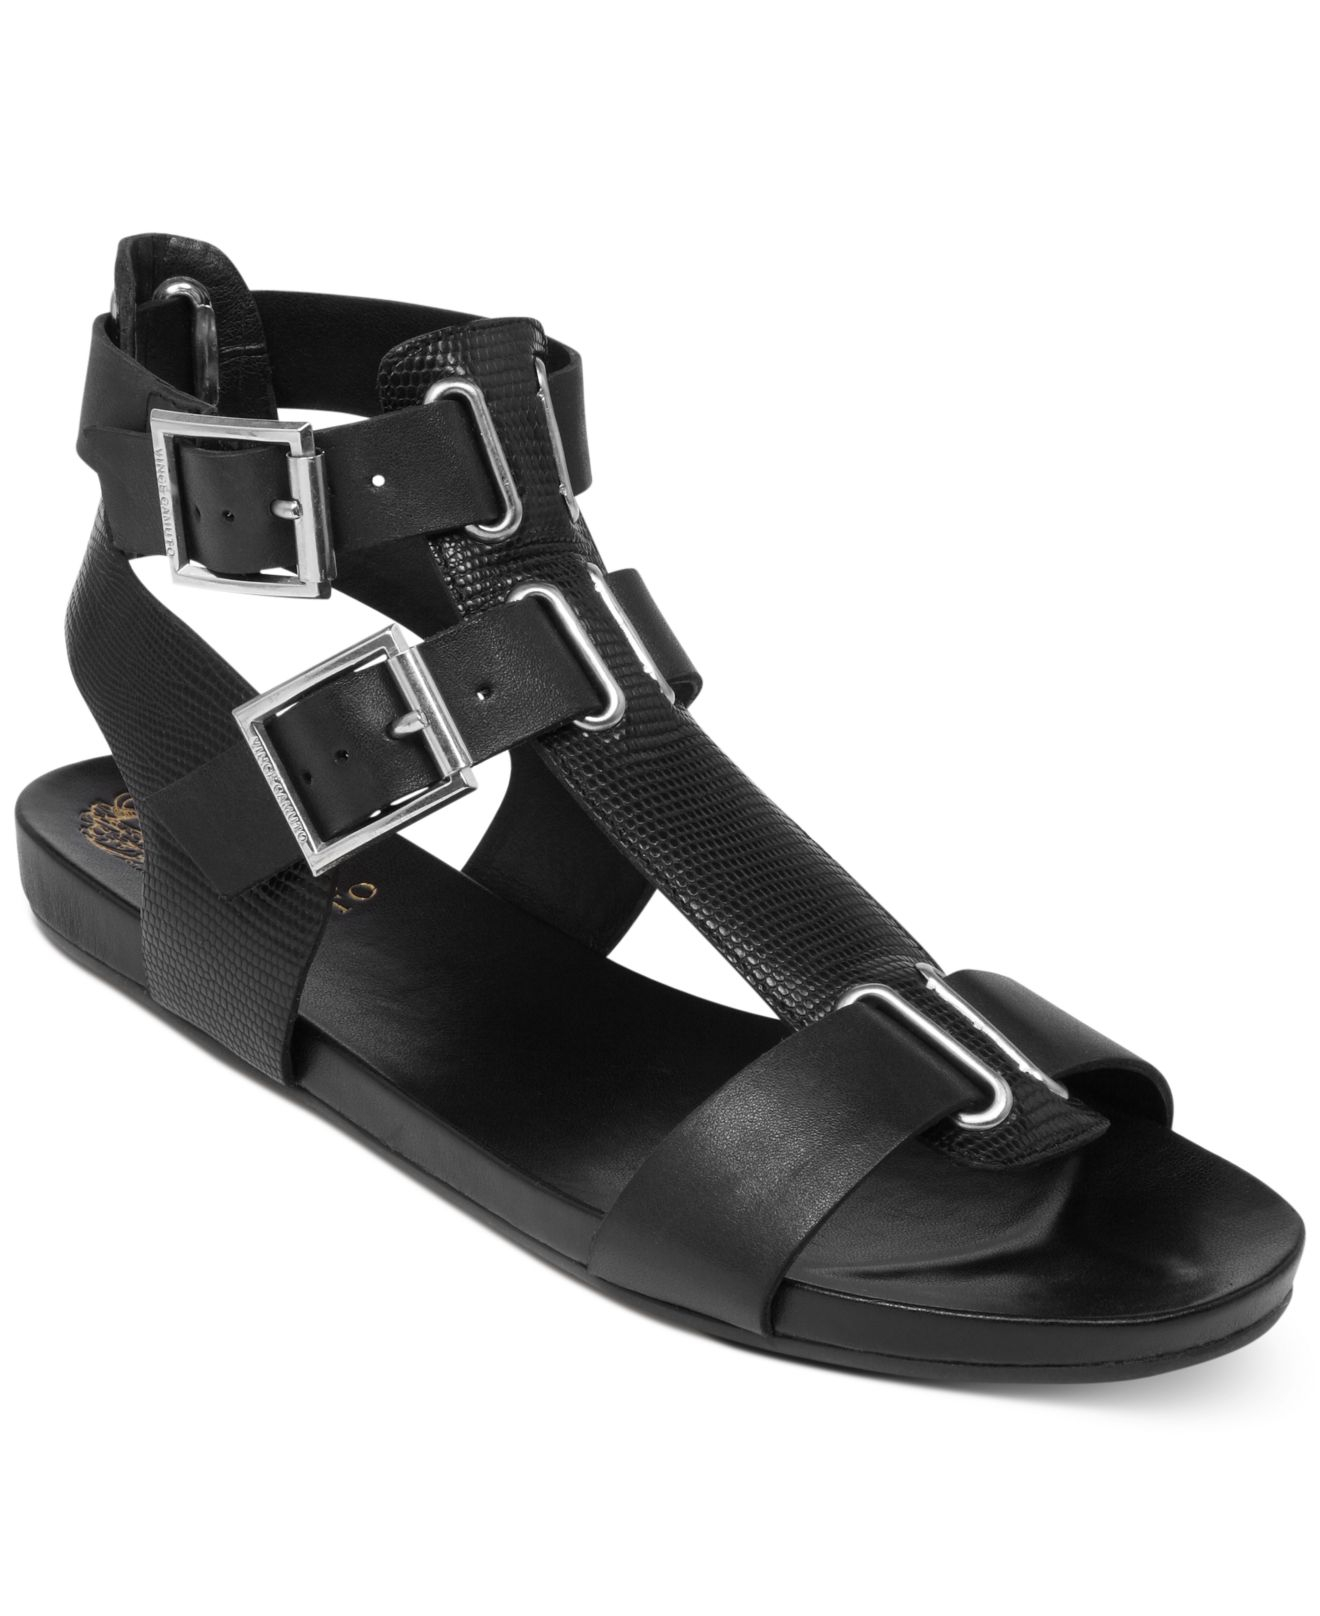 Vince Camuto Pixe Footbed Sandals In Black Lyst